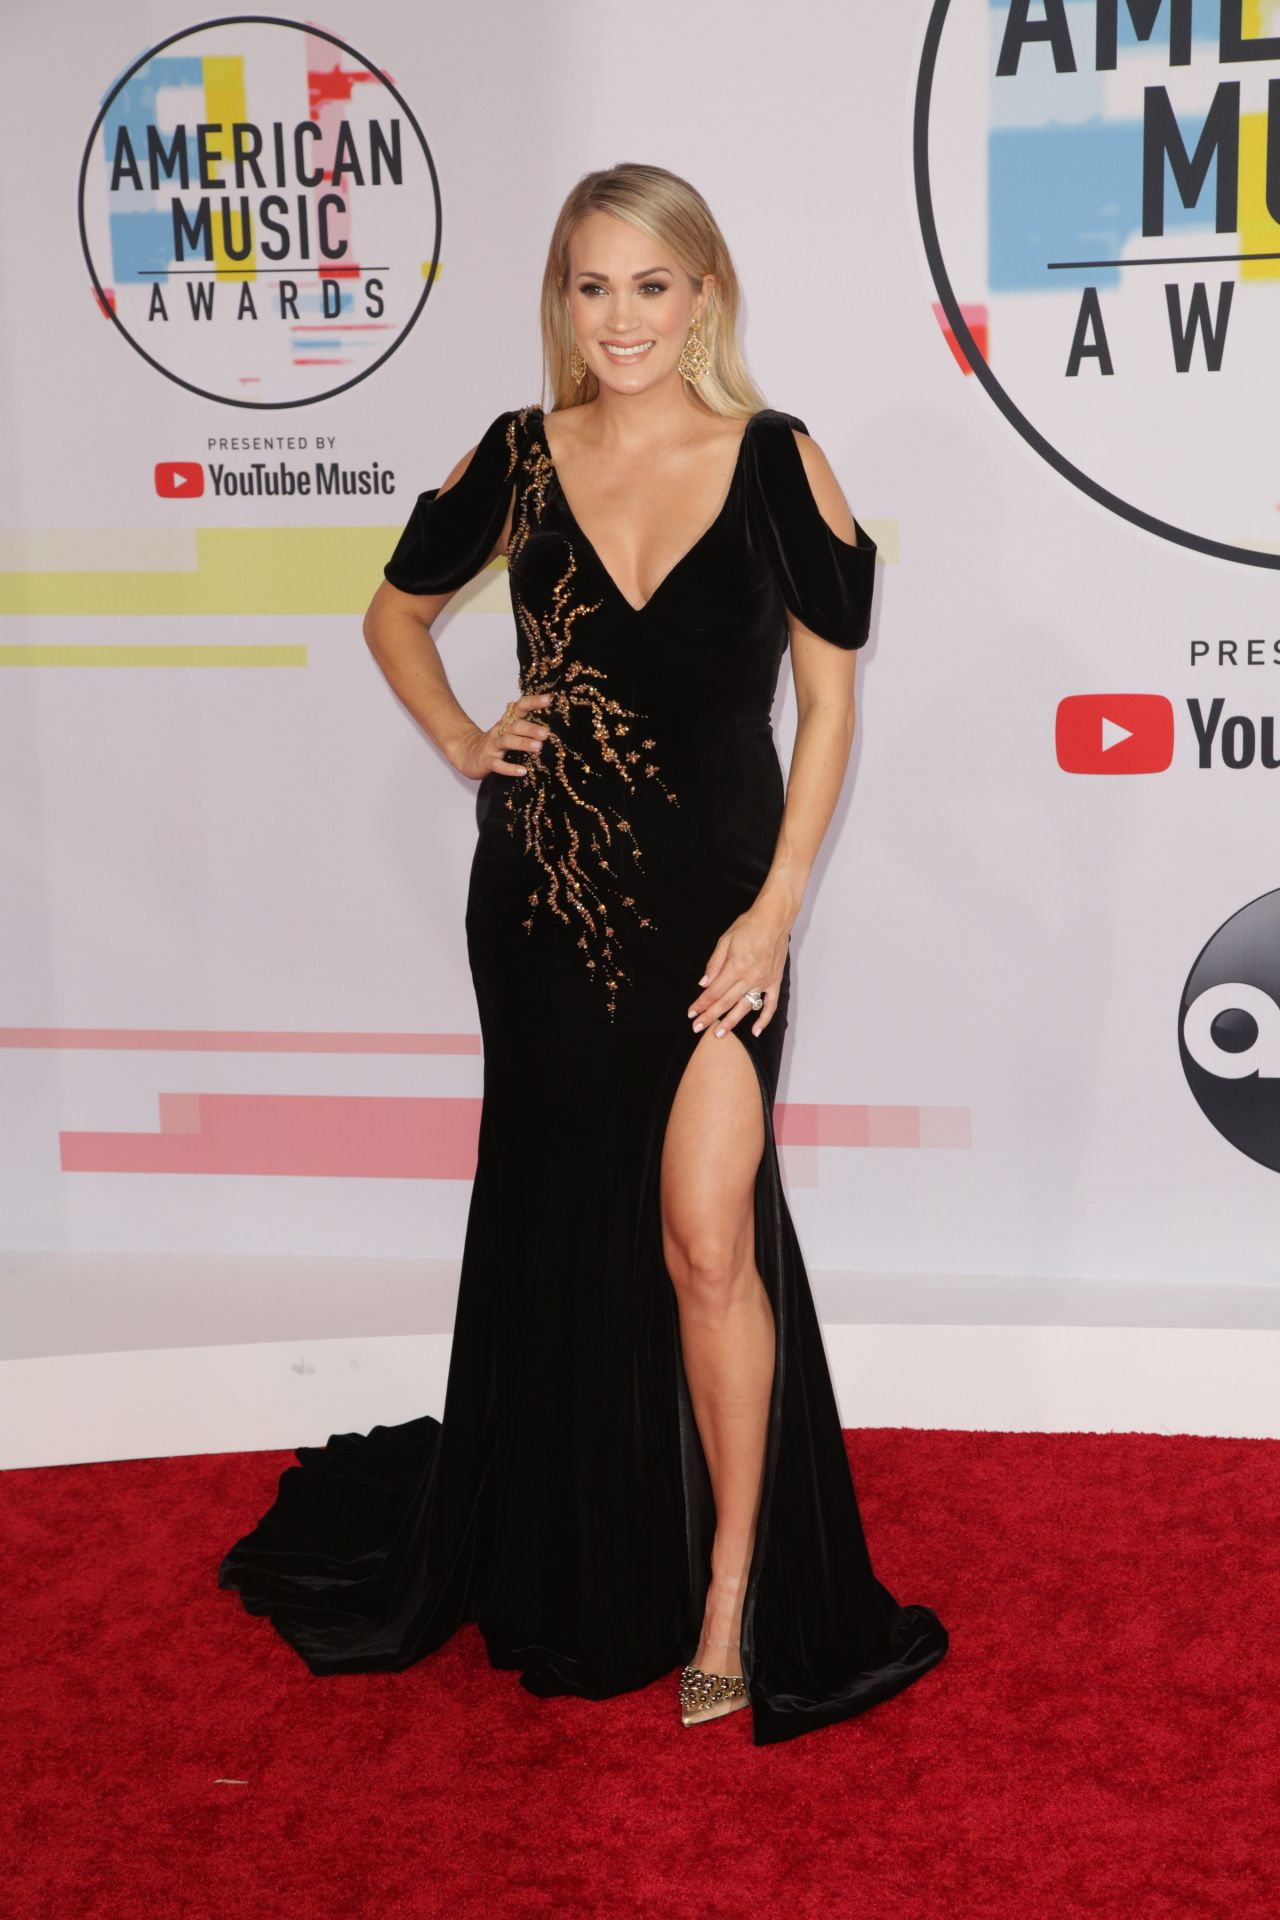 Carrie Underwood At 2018 American Music Awards at